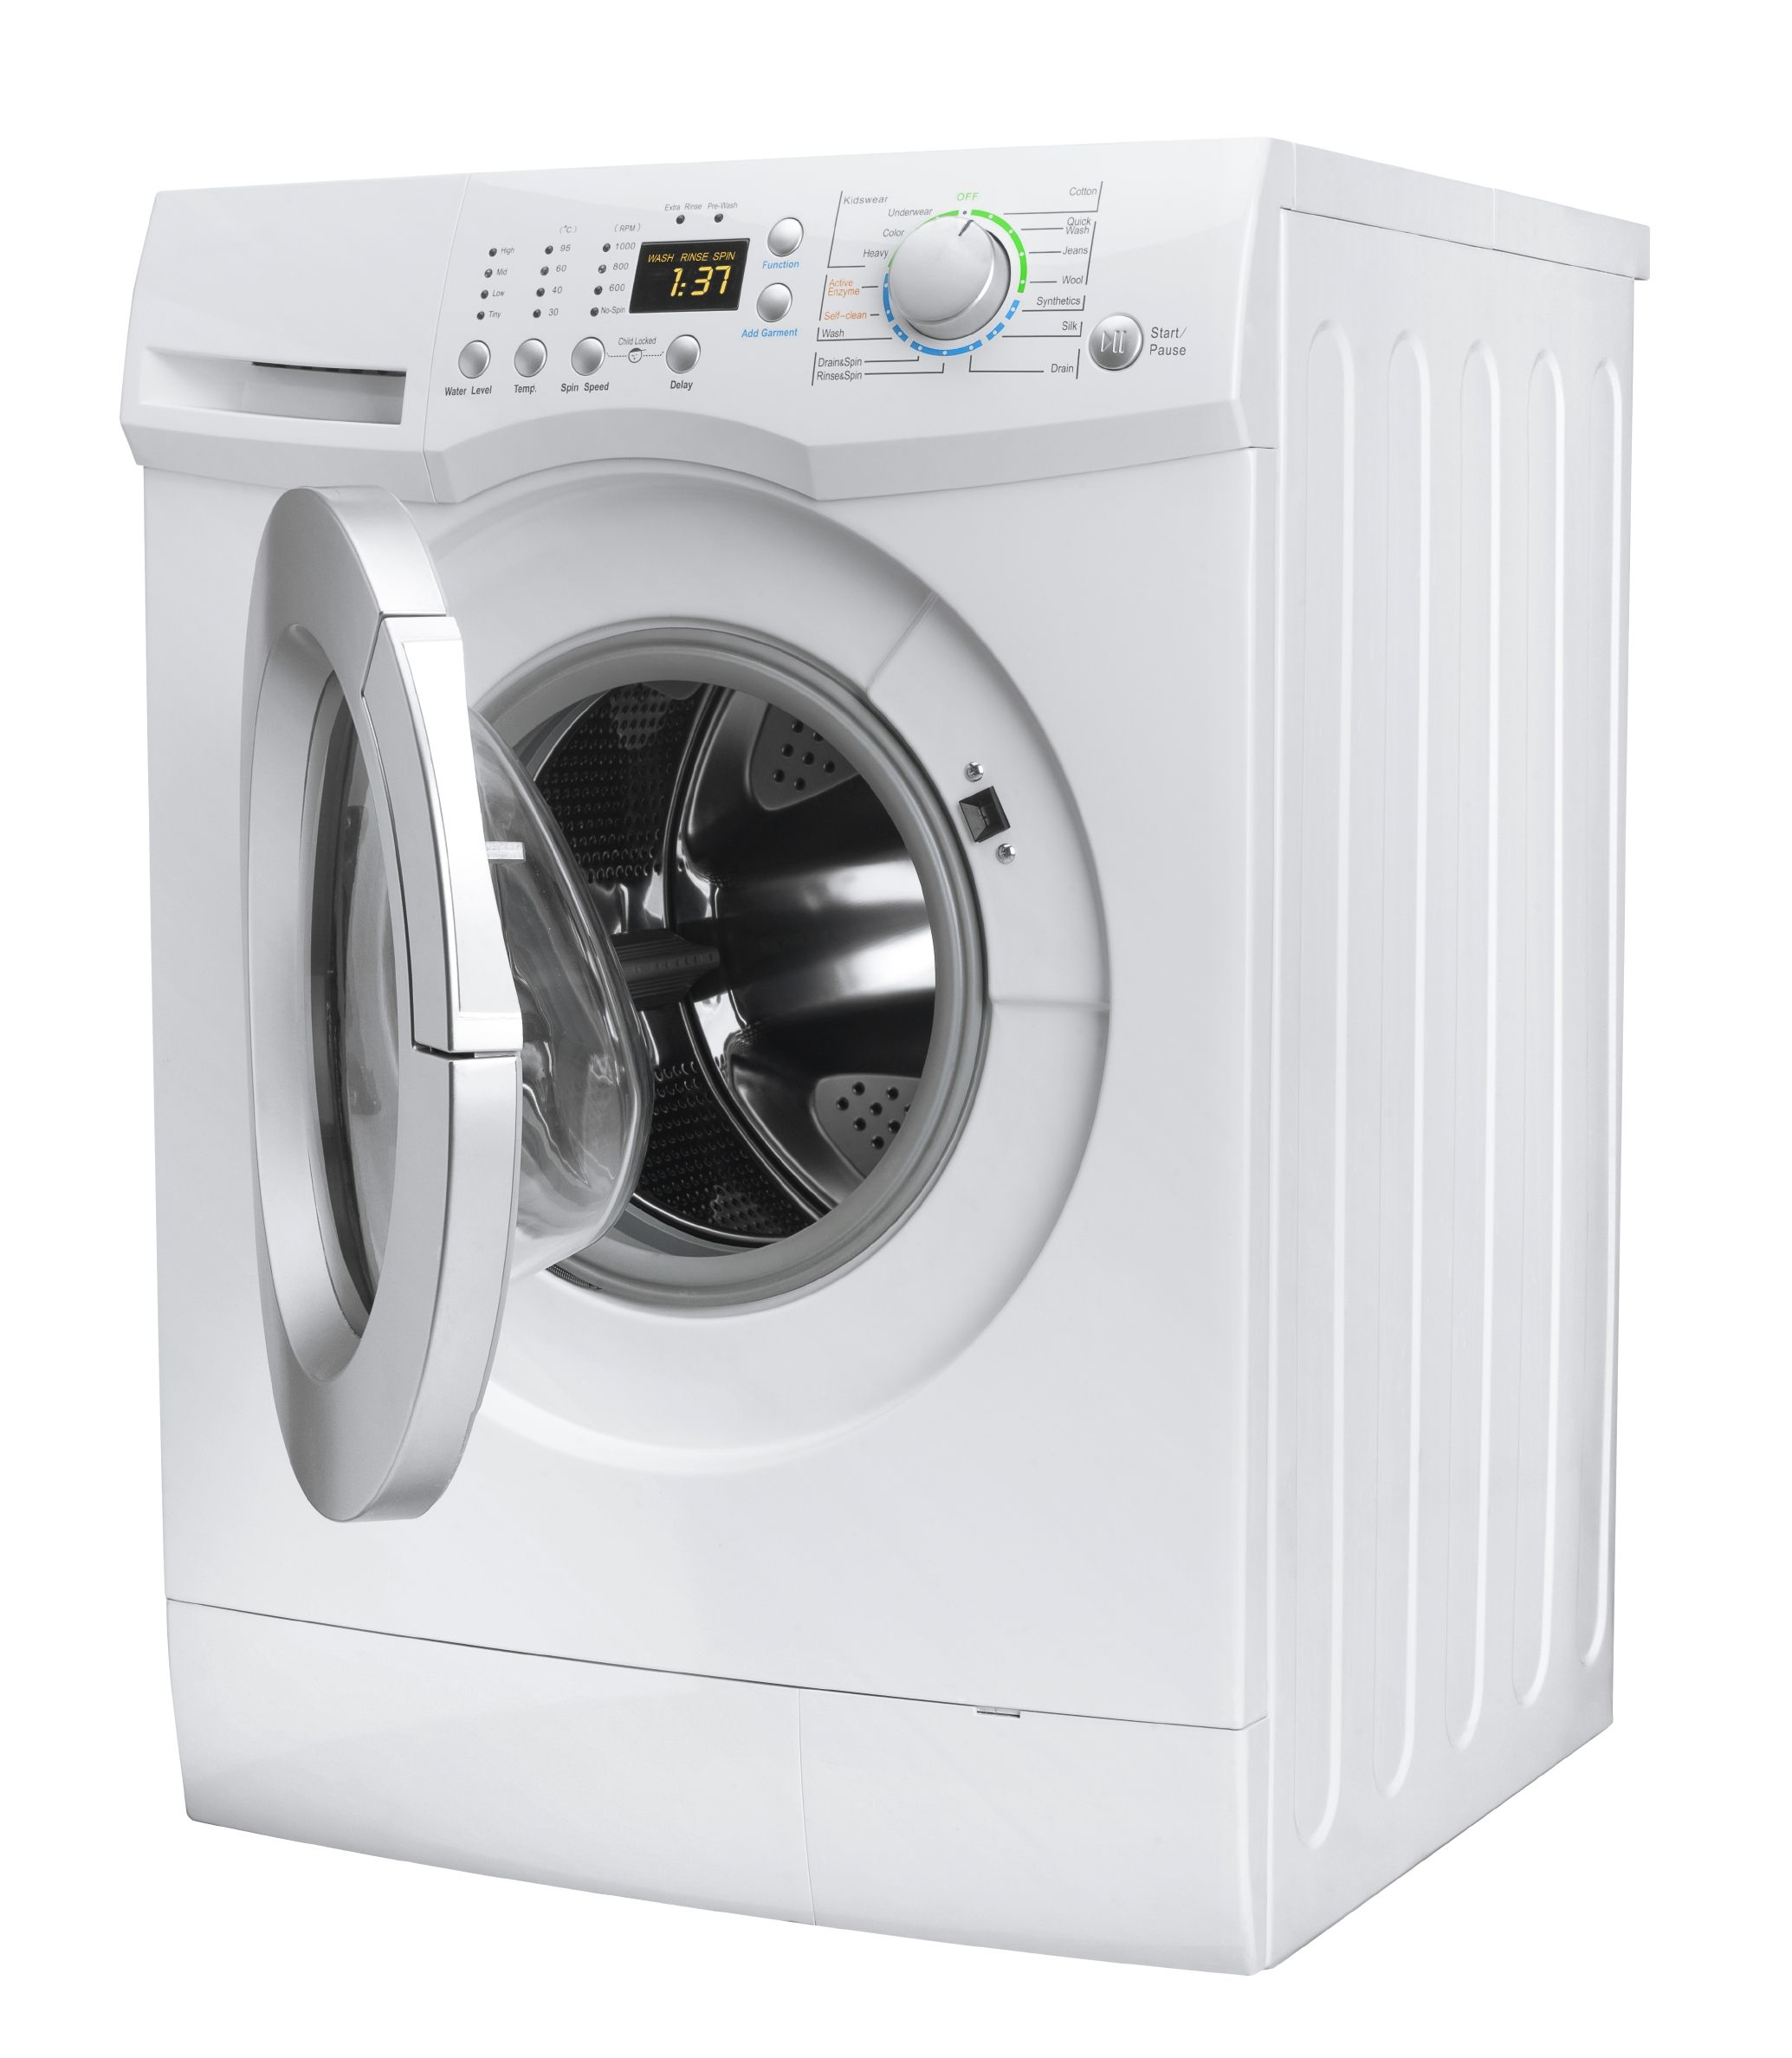 Istock 14902224 Washing Machine 2 Jpg 2069 2376 Stripping Cloth Diapers Clean Washing Machine Front Loading Washing Machine